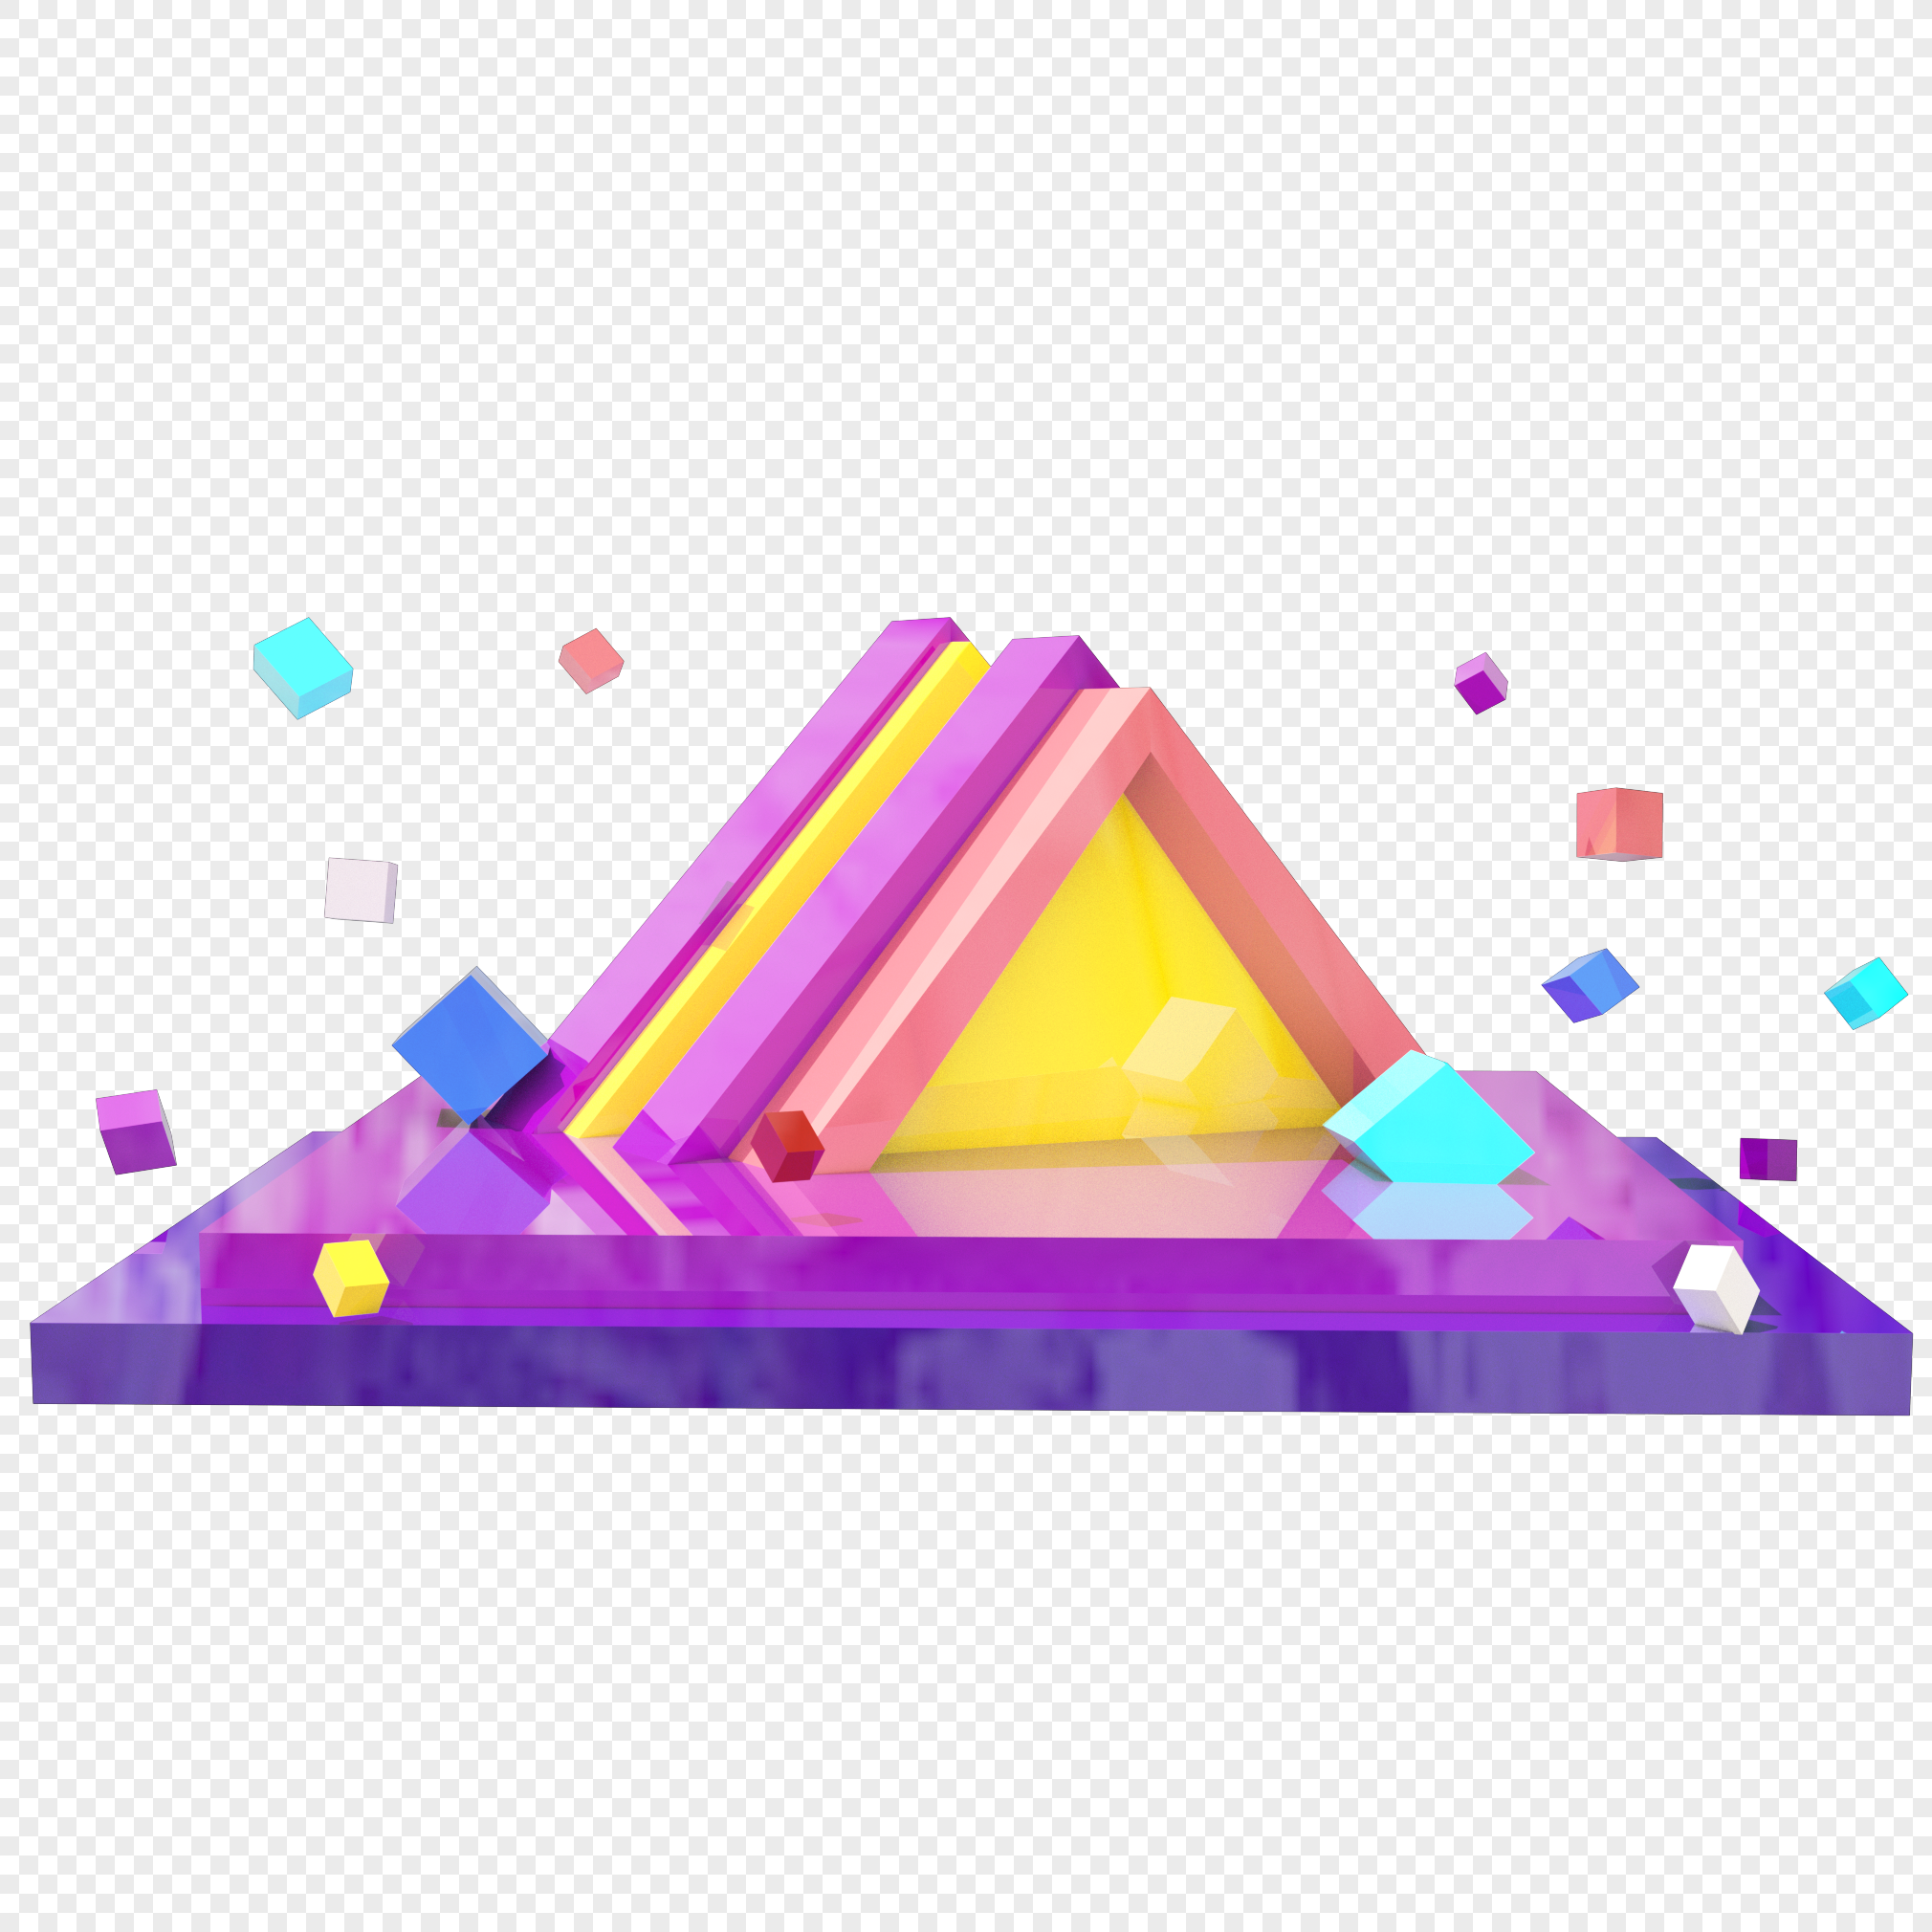 Stage Decoration Png Image Picture Free Download 400781581 Lovepik Com